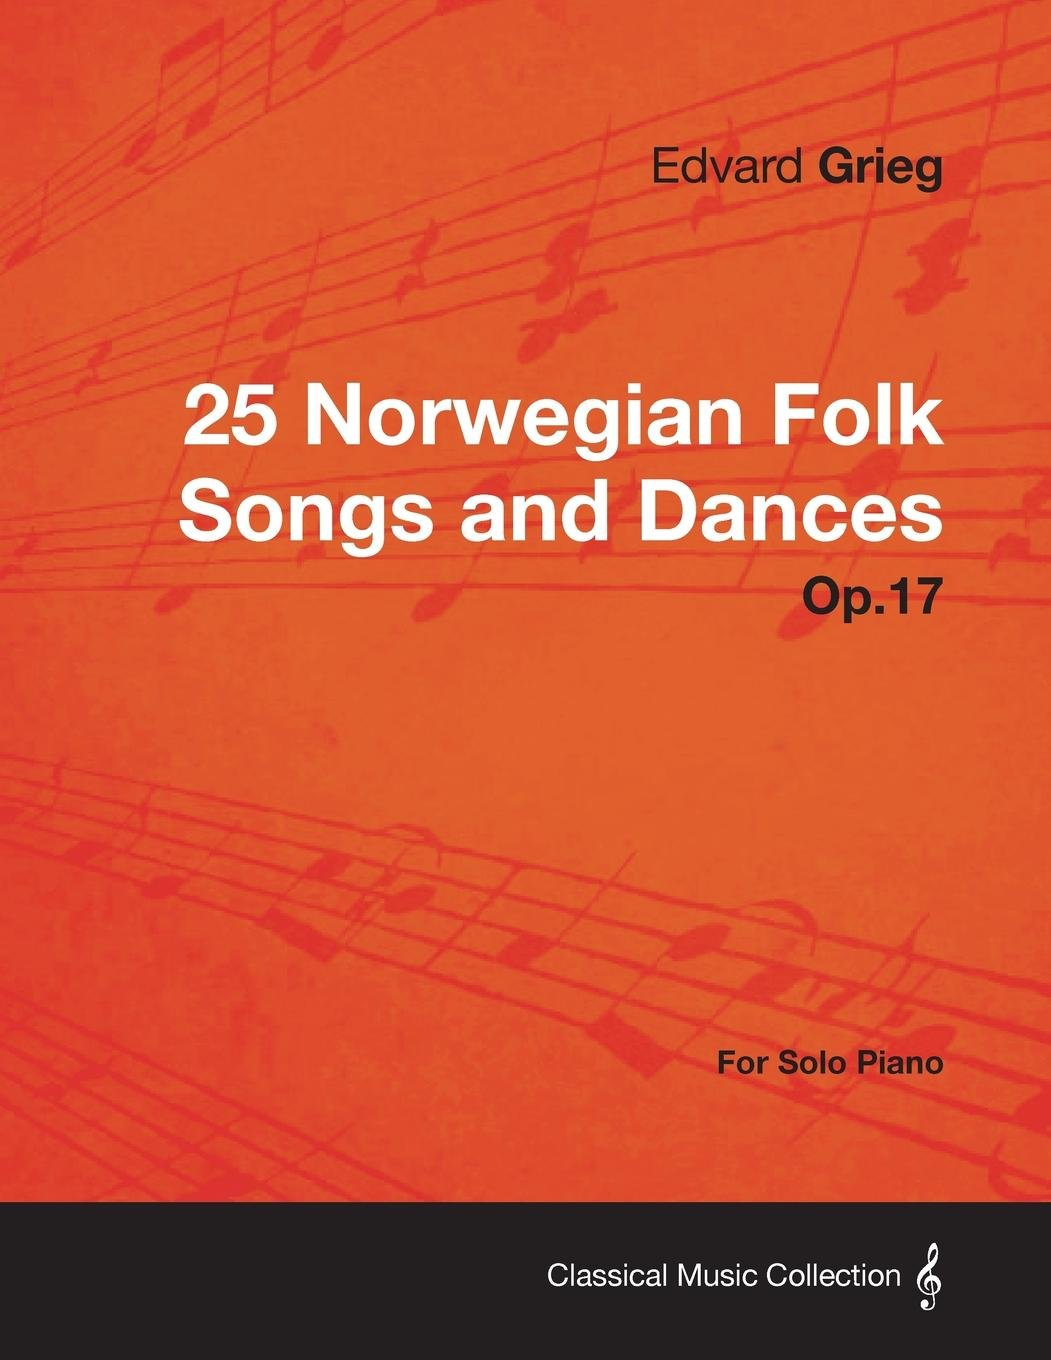 25 Norwegian Folk Songs and Dances Op.17 - For Solo Piano PDF